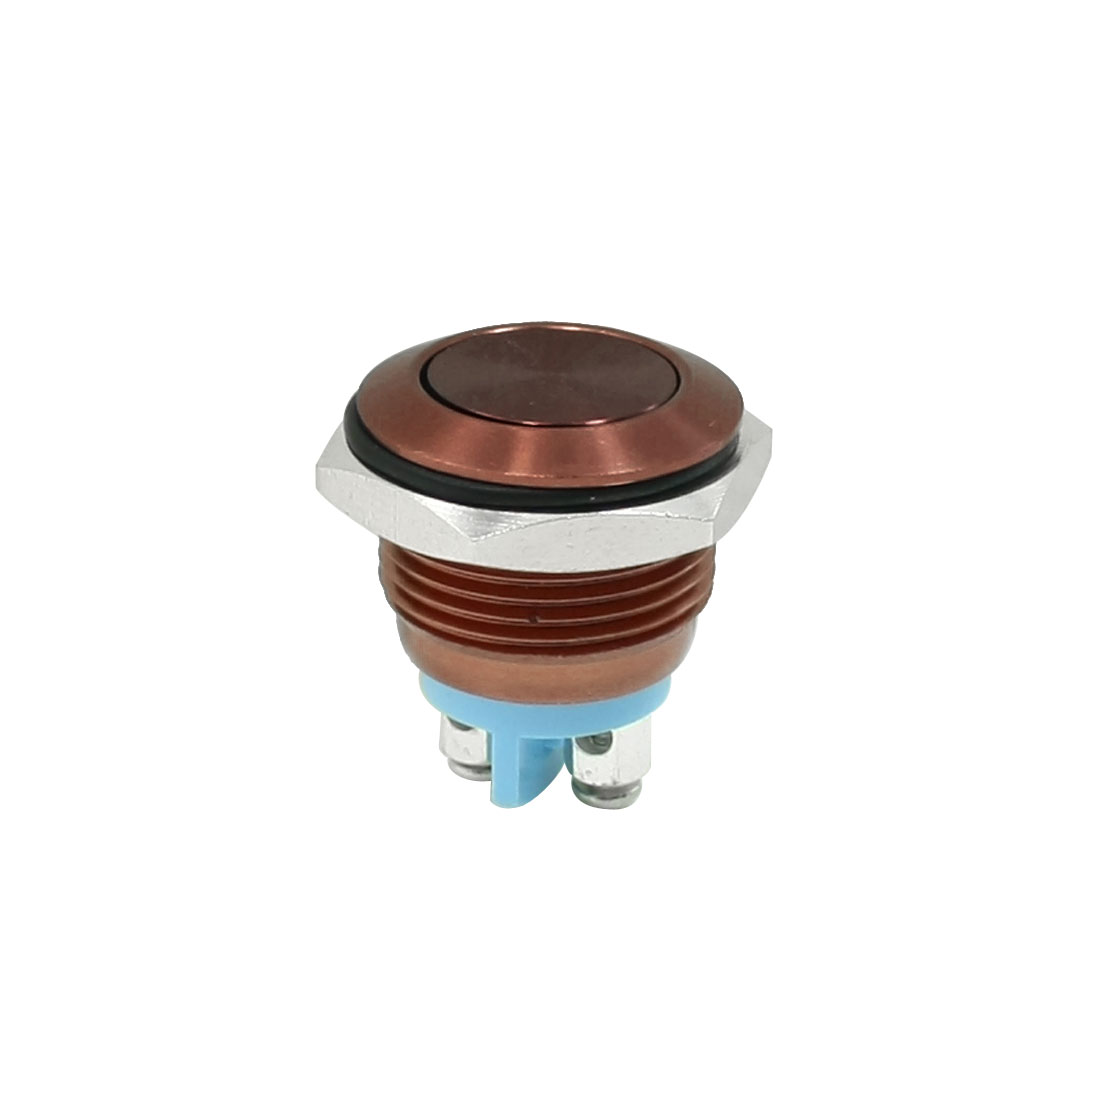 AC 250V 3A Coffee Color Flat Top Anti-explosion SPST N/O Push Button Switch